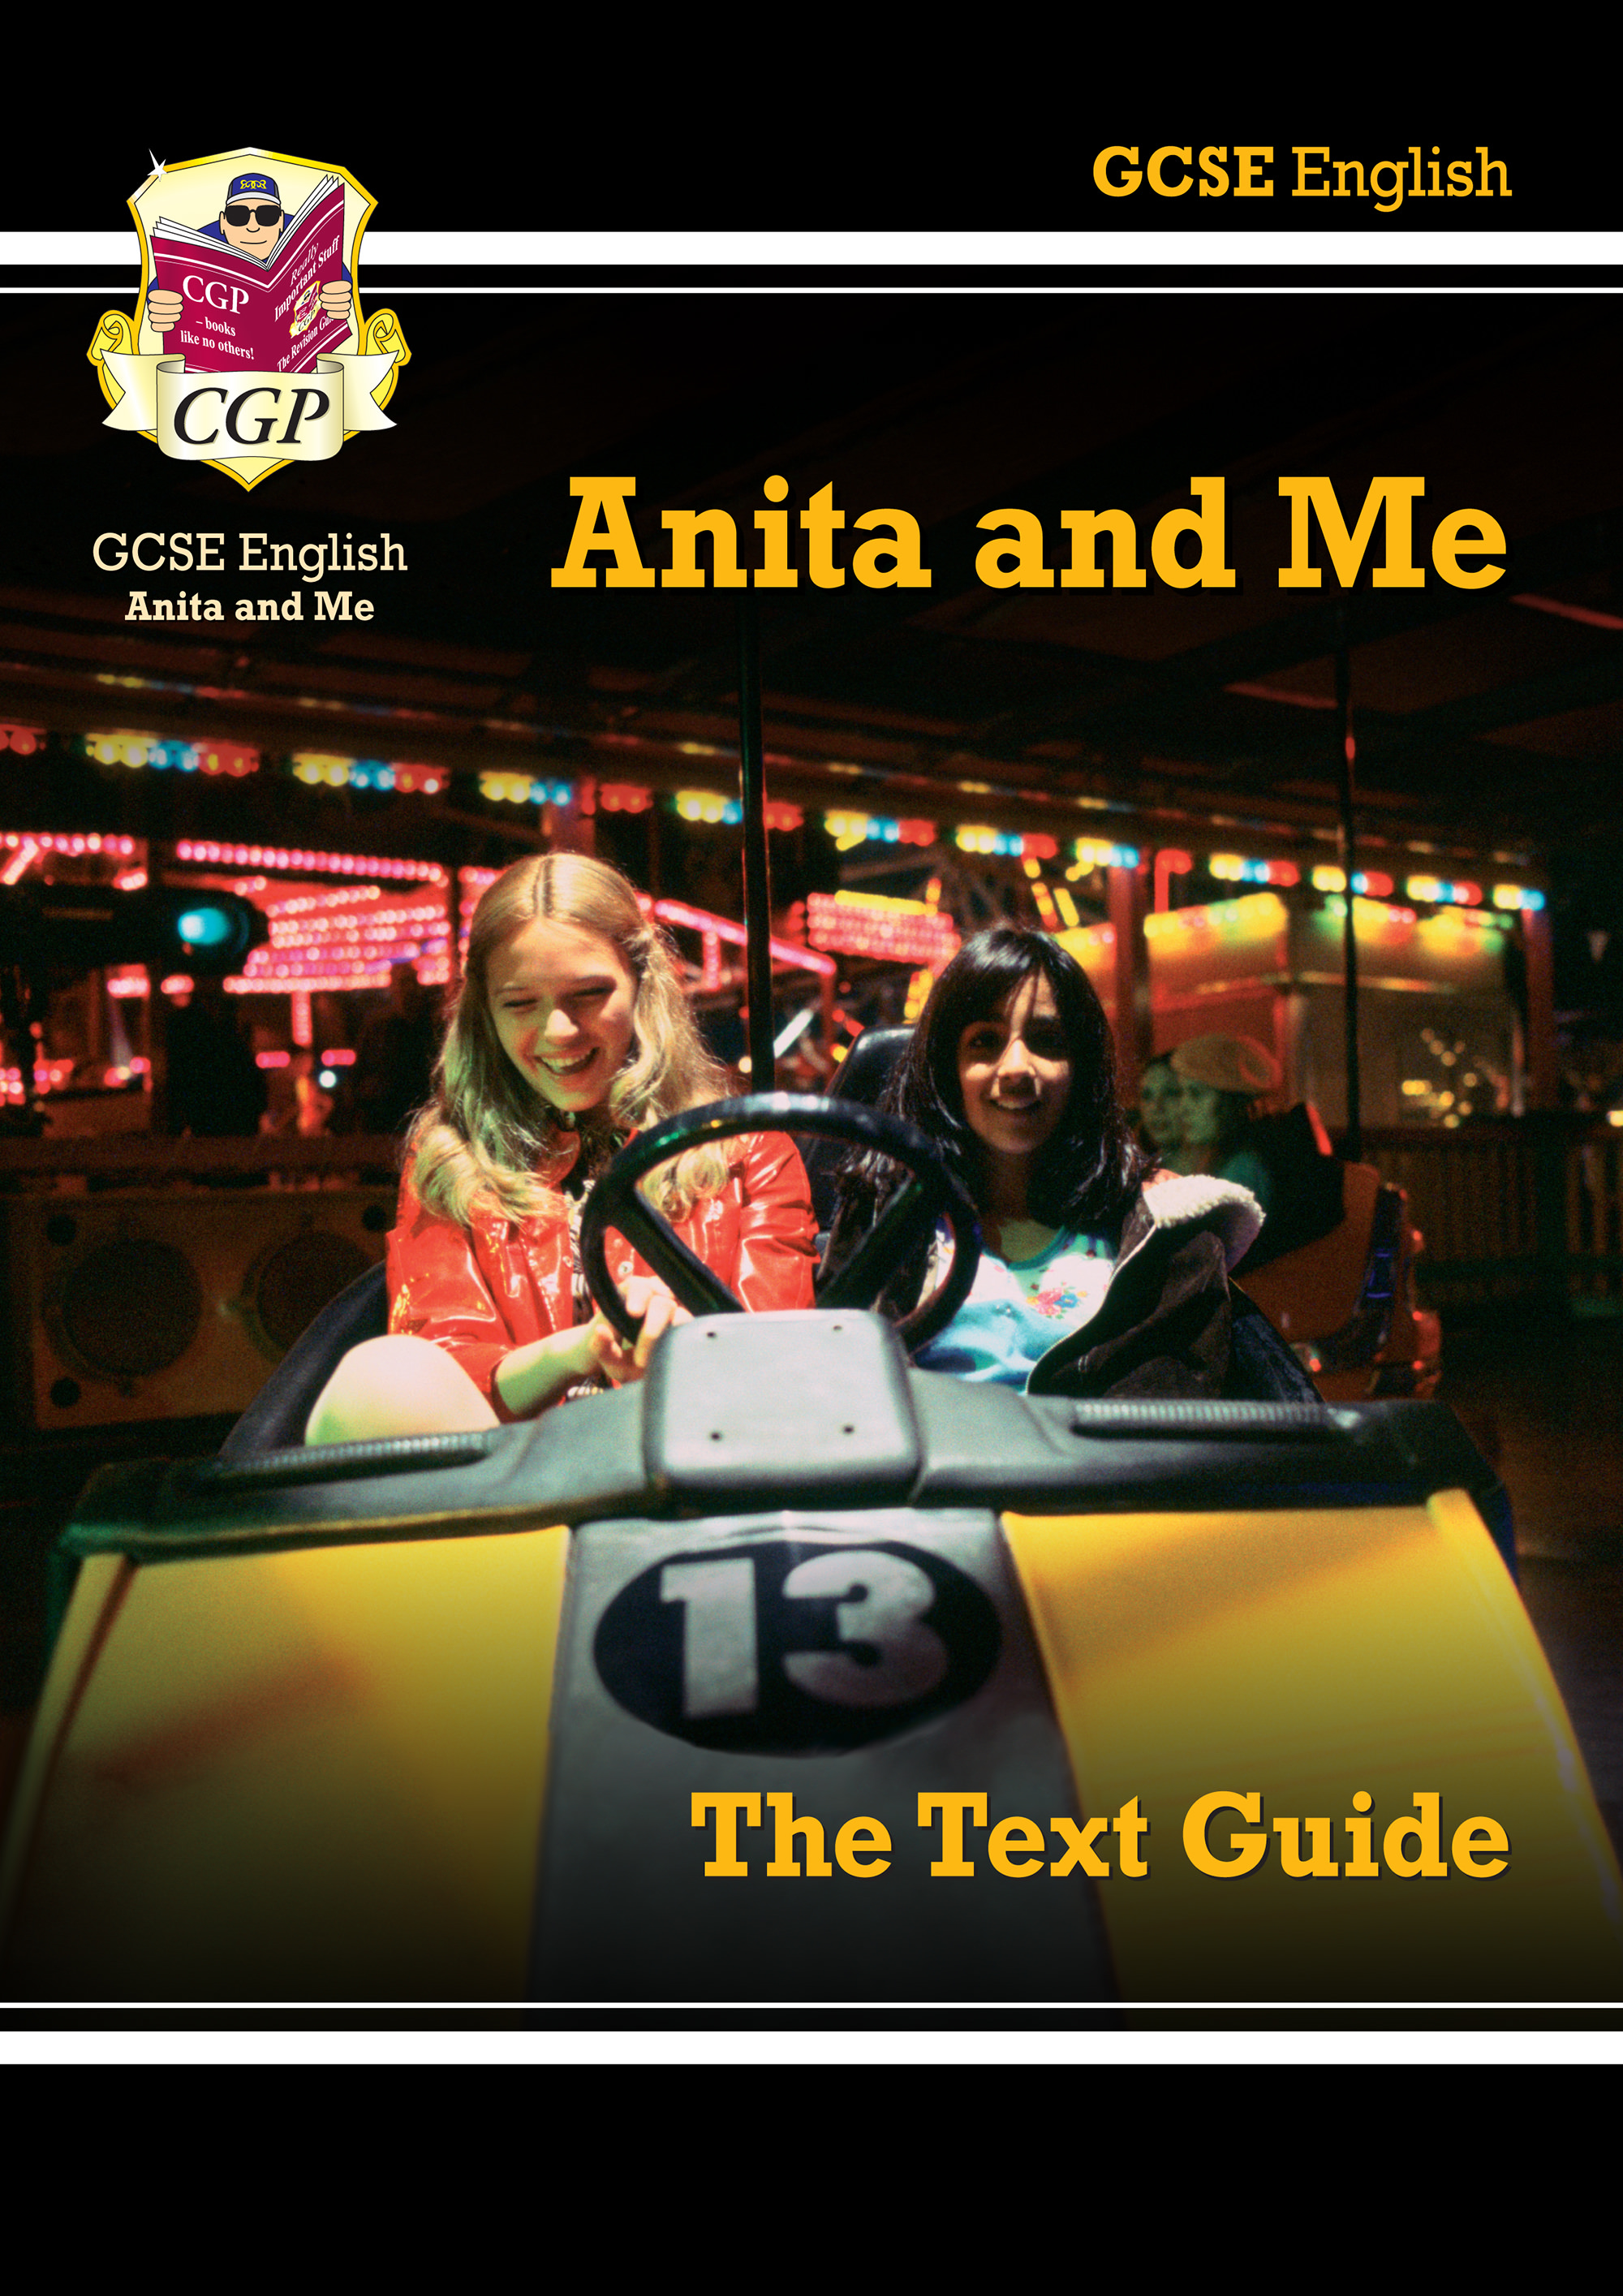 ETAM41 - Grade 9-1 GCSE English Text Guide - Anita and Me